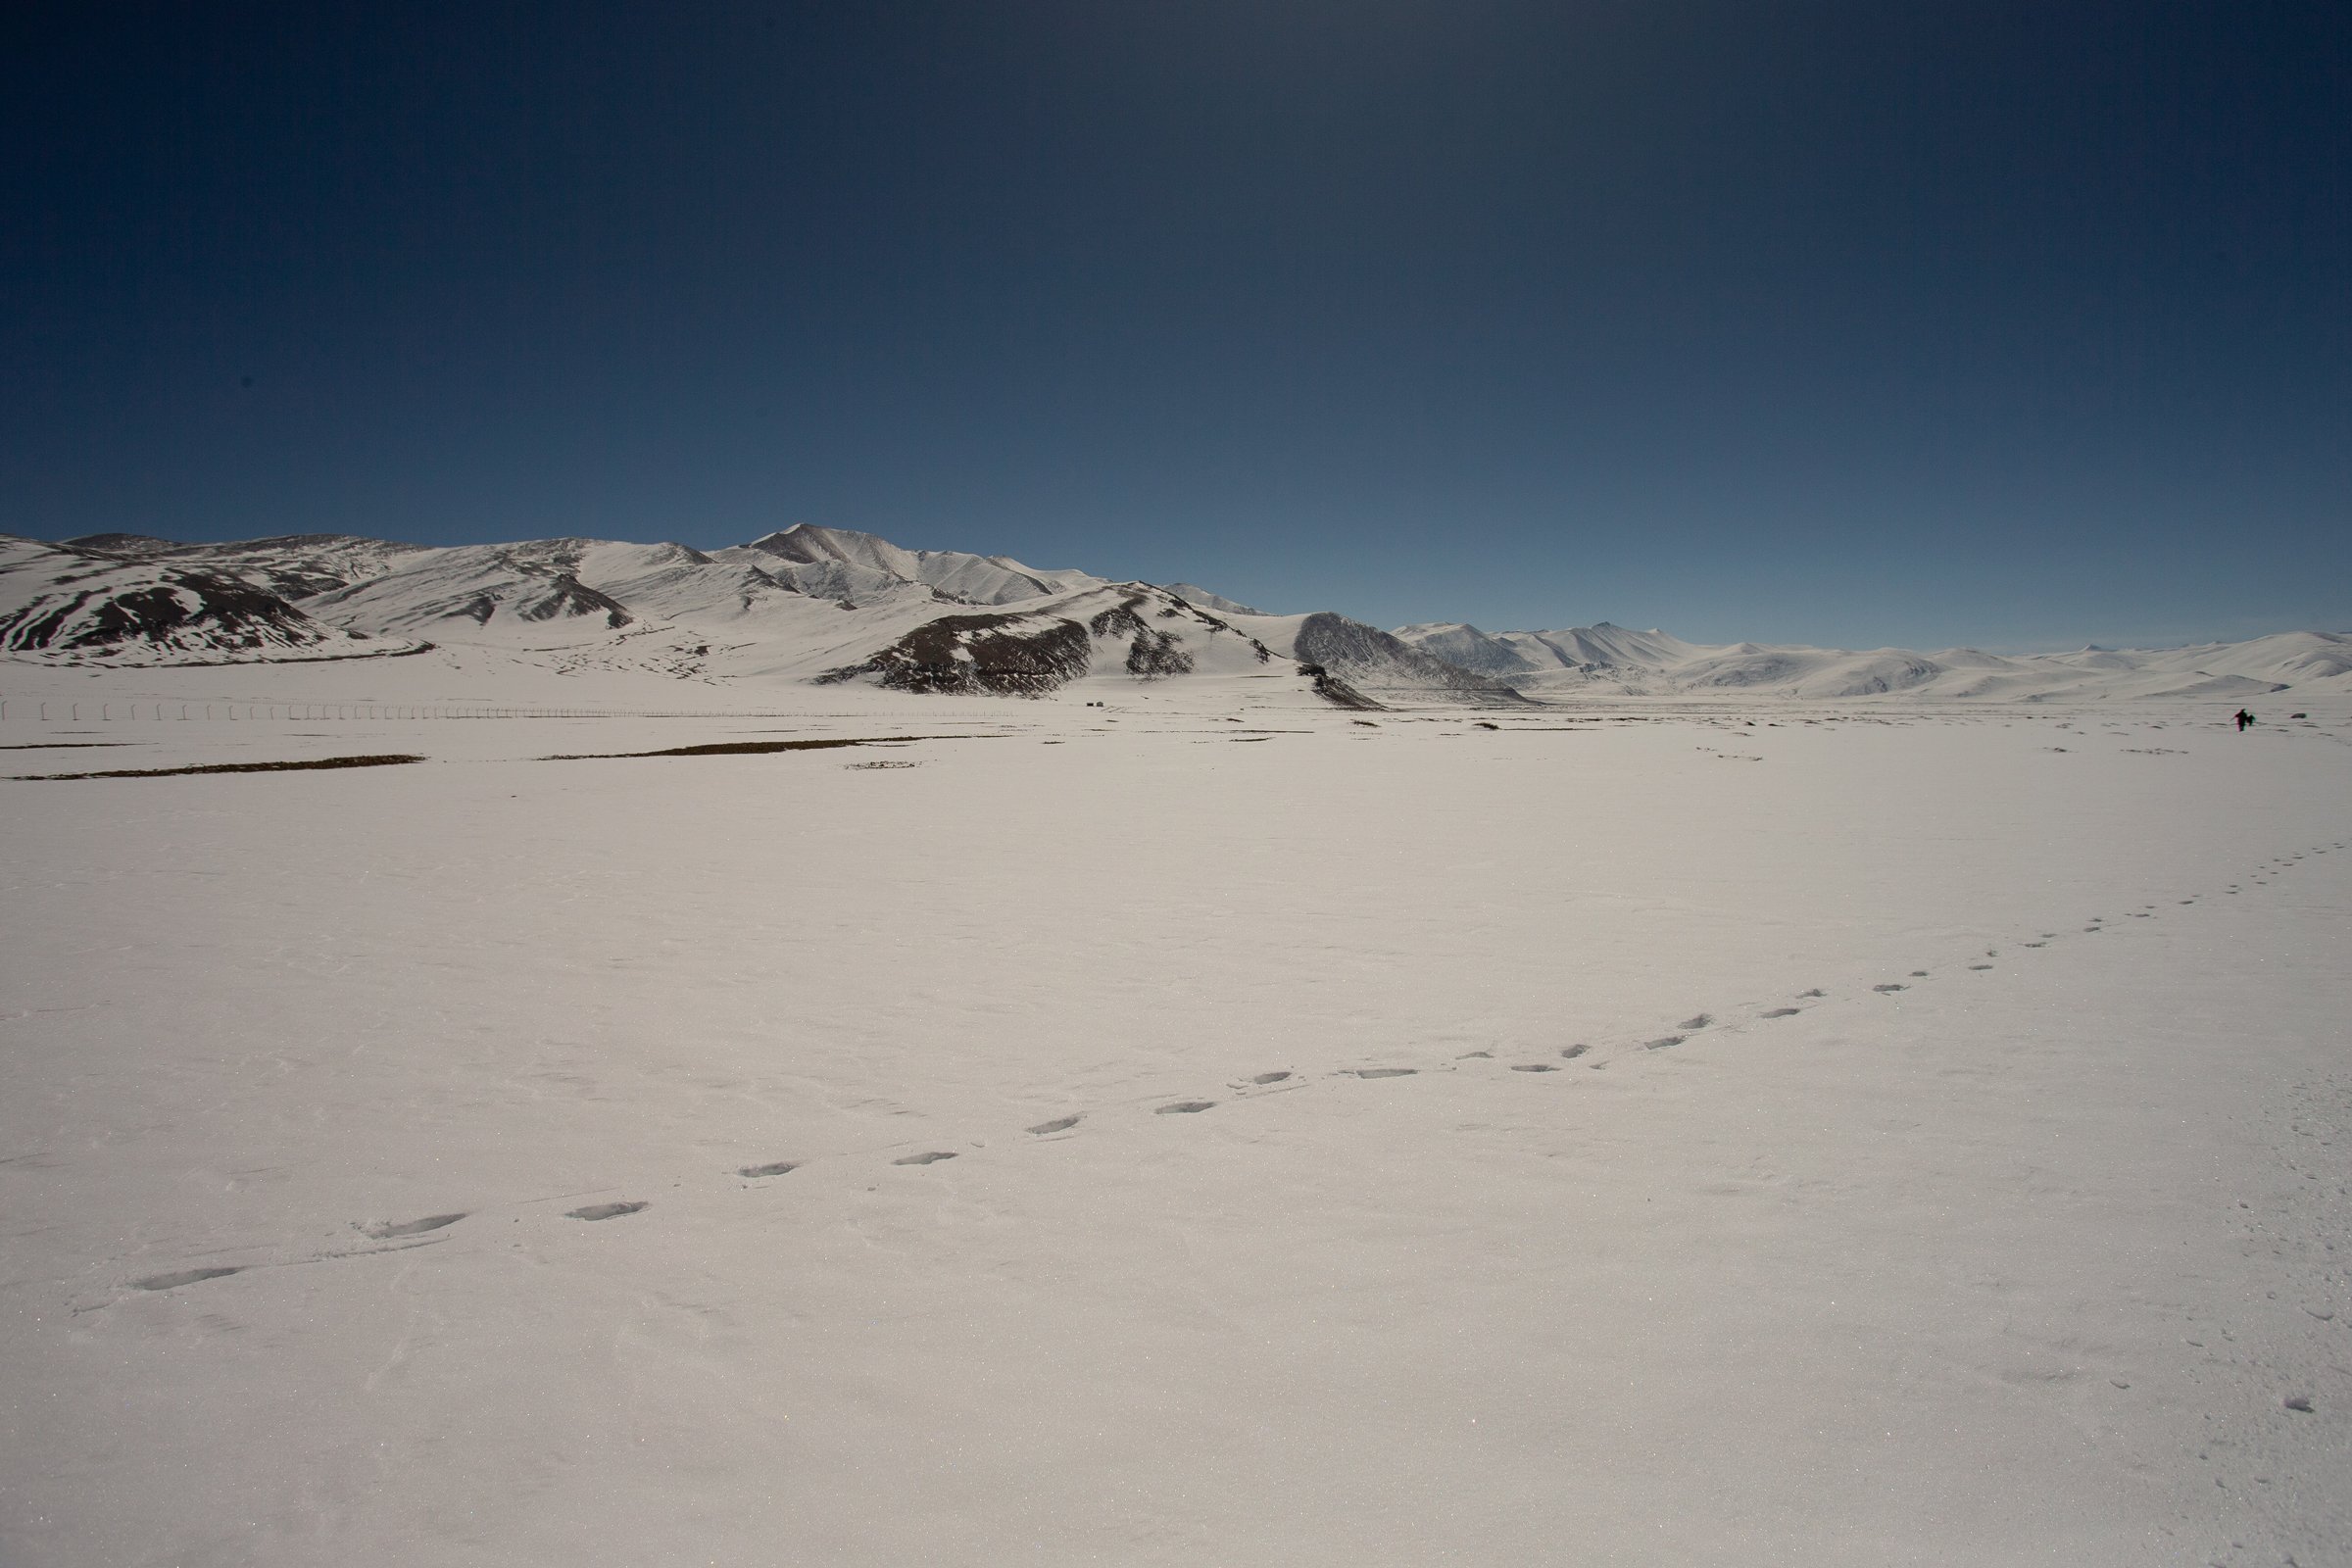 Pallas's Cat tracks at Tso Kar [Mike Watson]